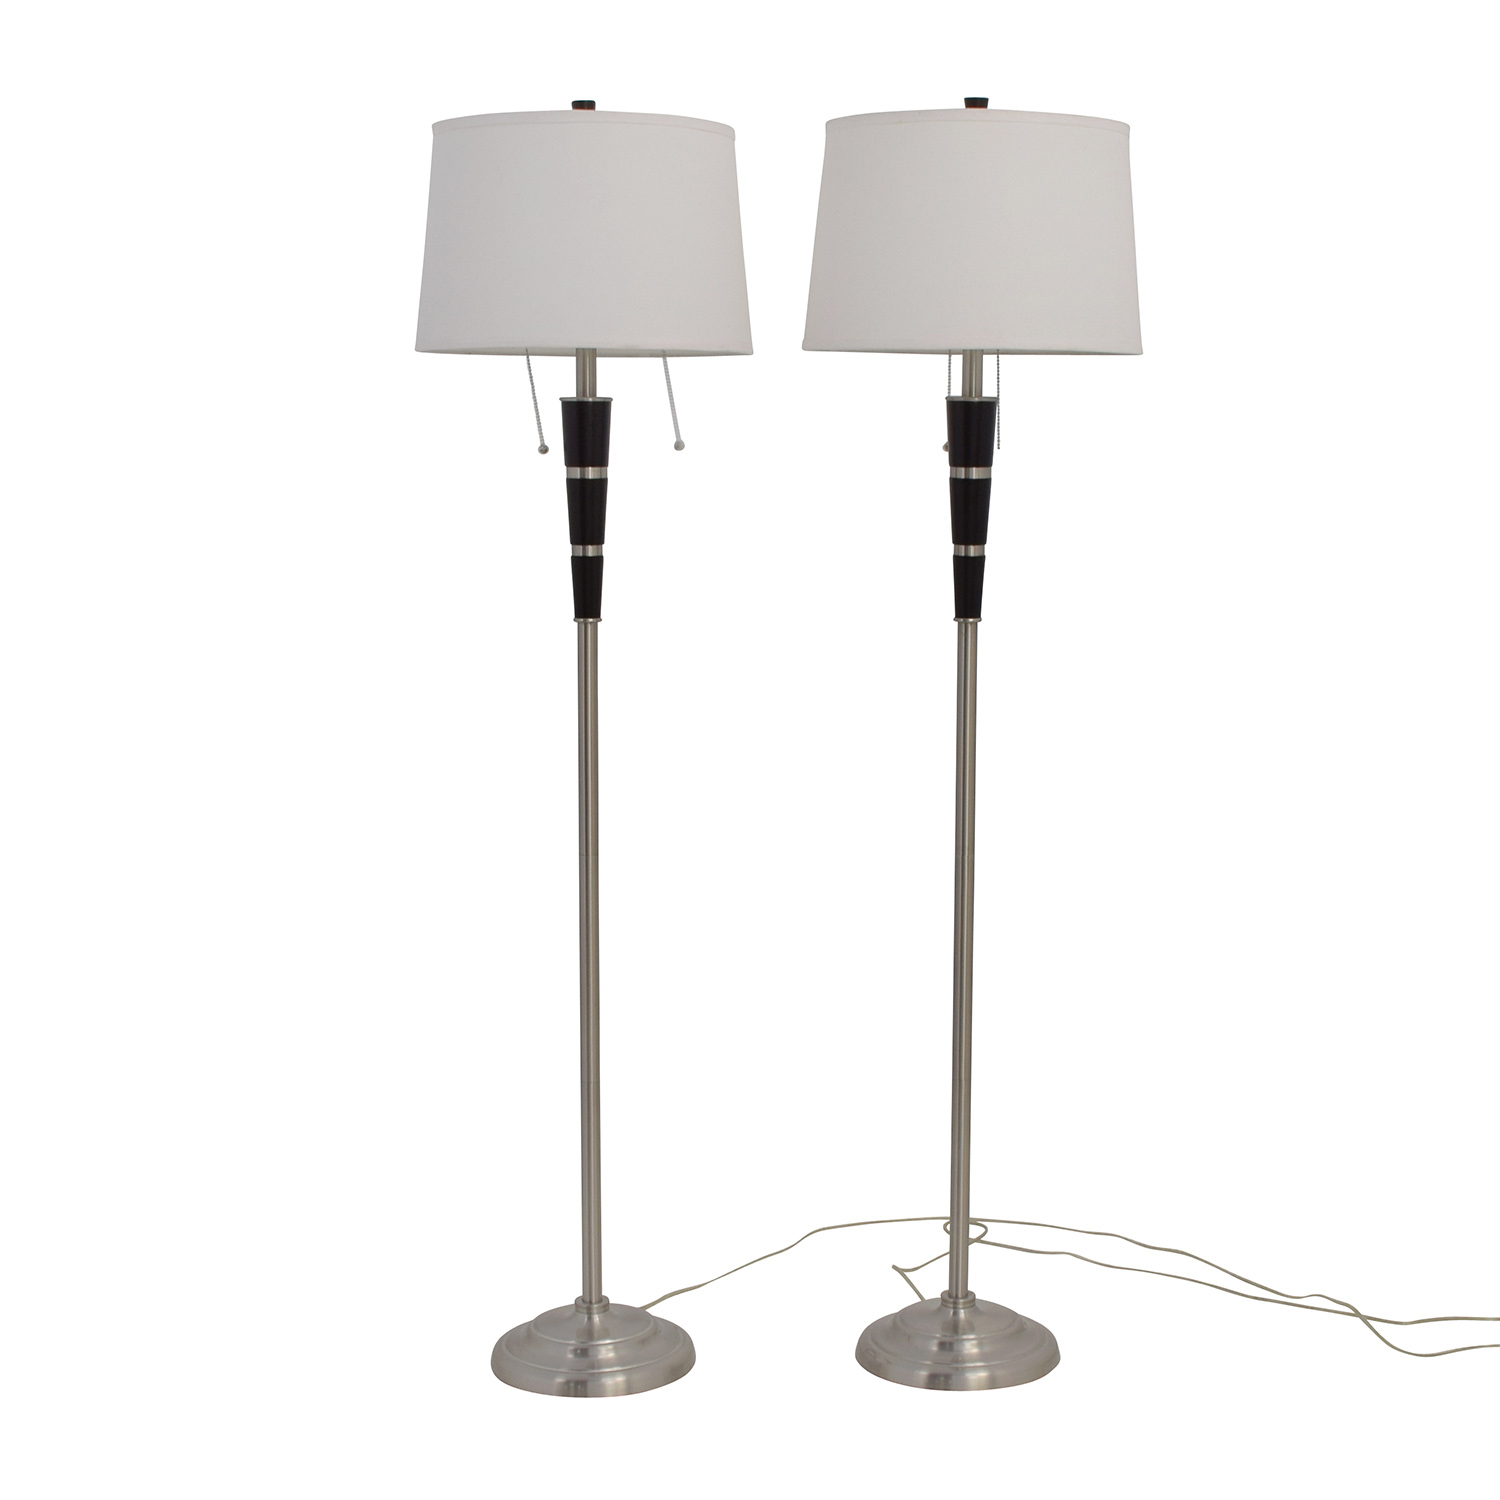 Nordstrom Nordstrom Black And Chrome Standing Floor Lamps Chrome